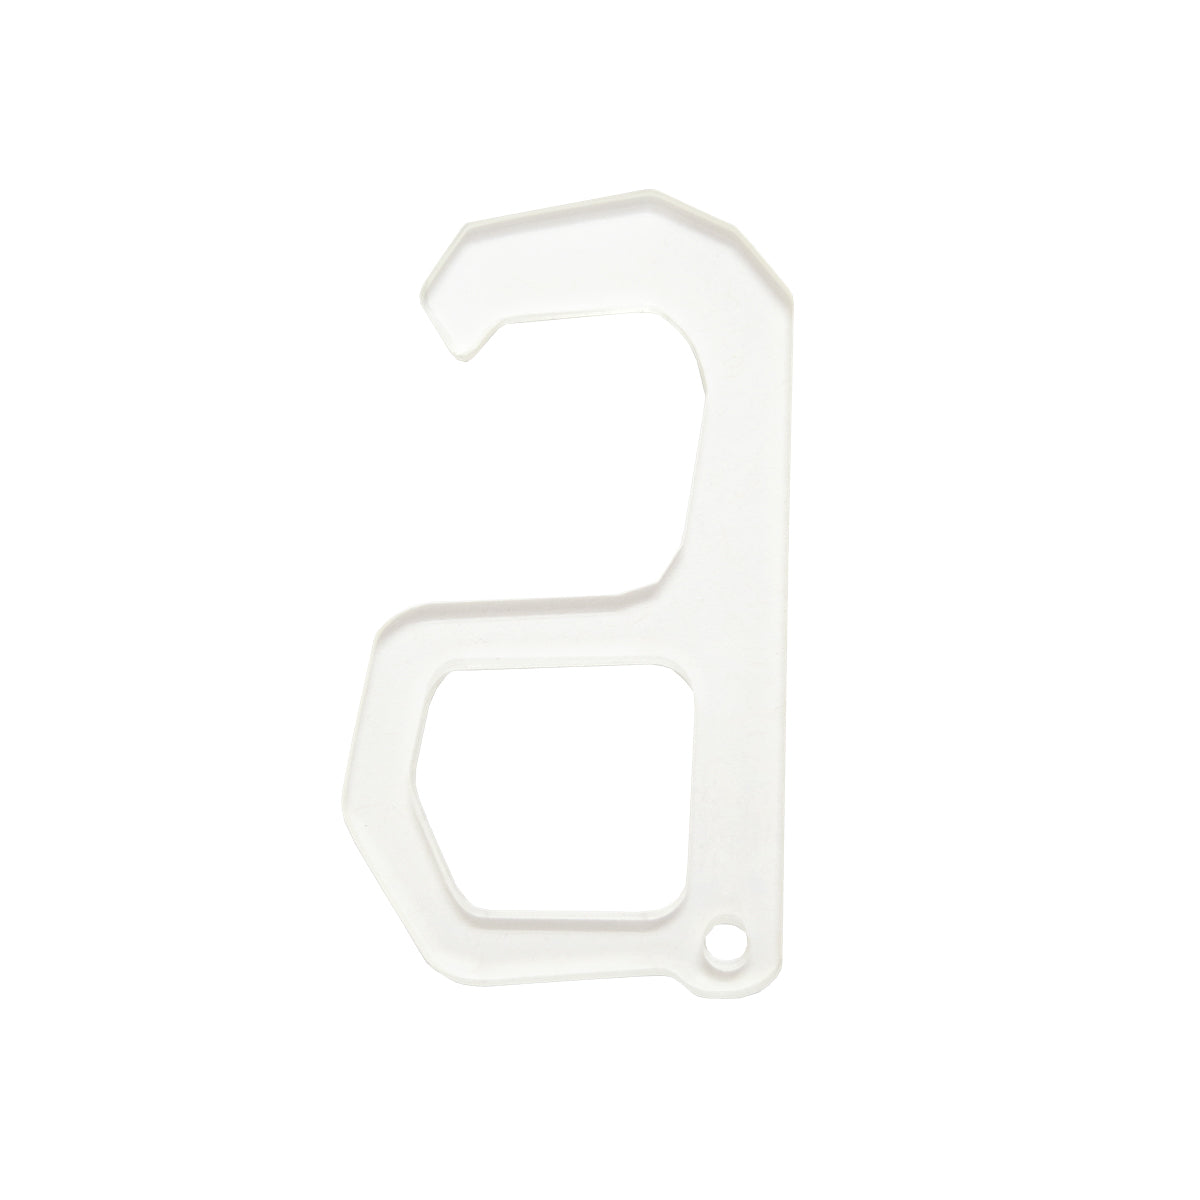 LITTMUSS Hybrid Safety Handle Clear -Pack of 4